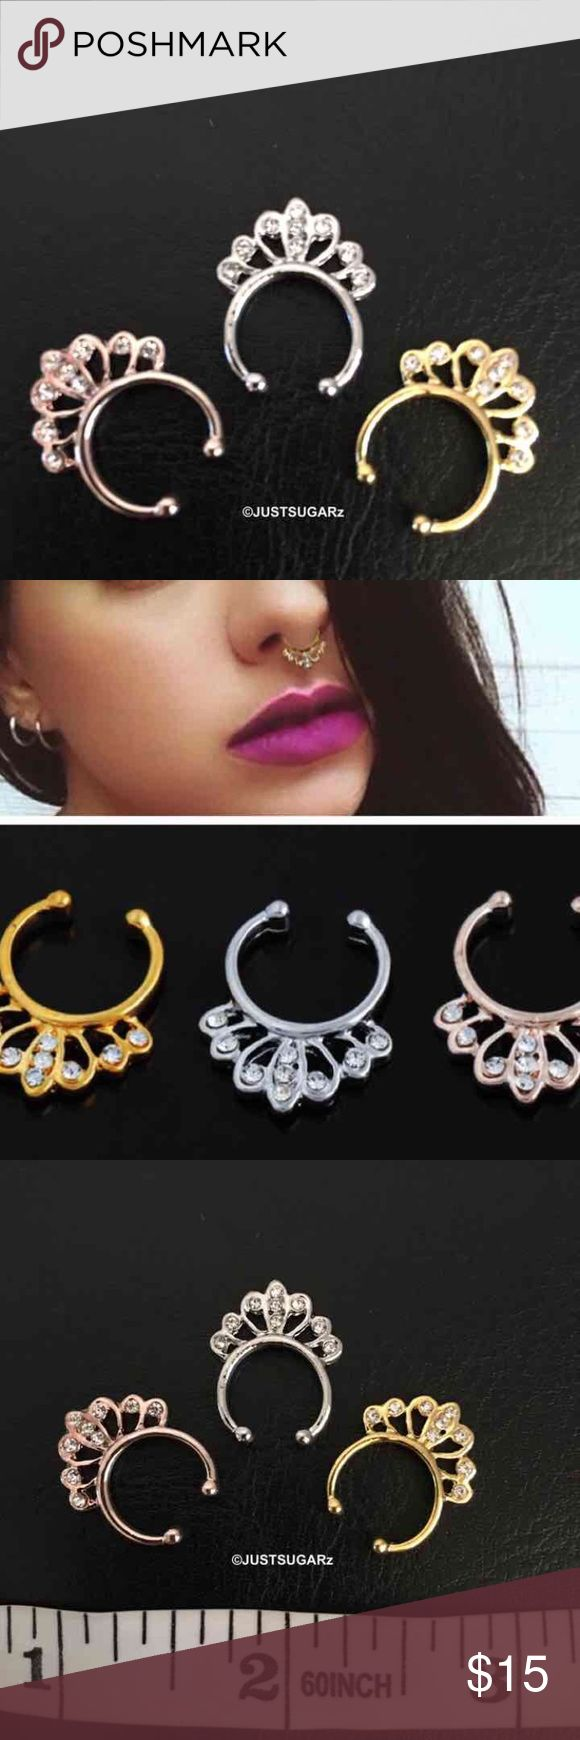 "3/$15 bull nose ring hoop non piercing 3/$15 bull nose ring hoop septum non piercing   Original price: 1/$10  Material: alloy/crystal ---no piercing   Colors available: silver, gold and rose gold   Look fabulous every day of the year. Wear them with a fancy outfit on a special night or casually ...Septum nose rings without having to actually pierce your nose!!!   Item does not have ""tags"" but it sealed in plastic. Never used...brand new.  Please keep in mind that it is the holidays. Thank…"